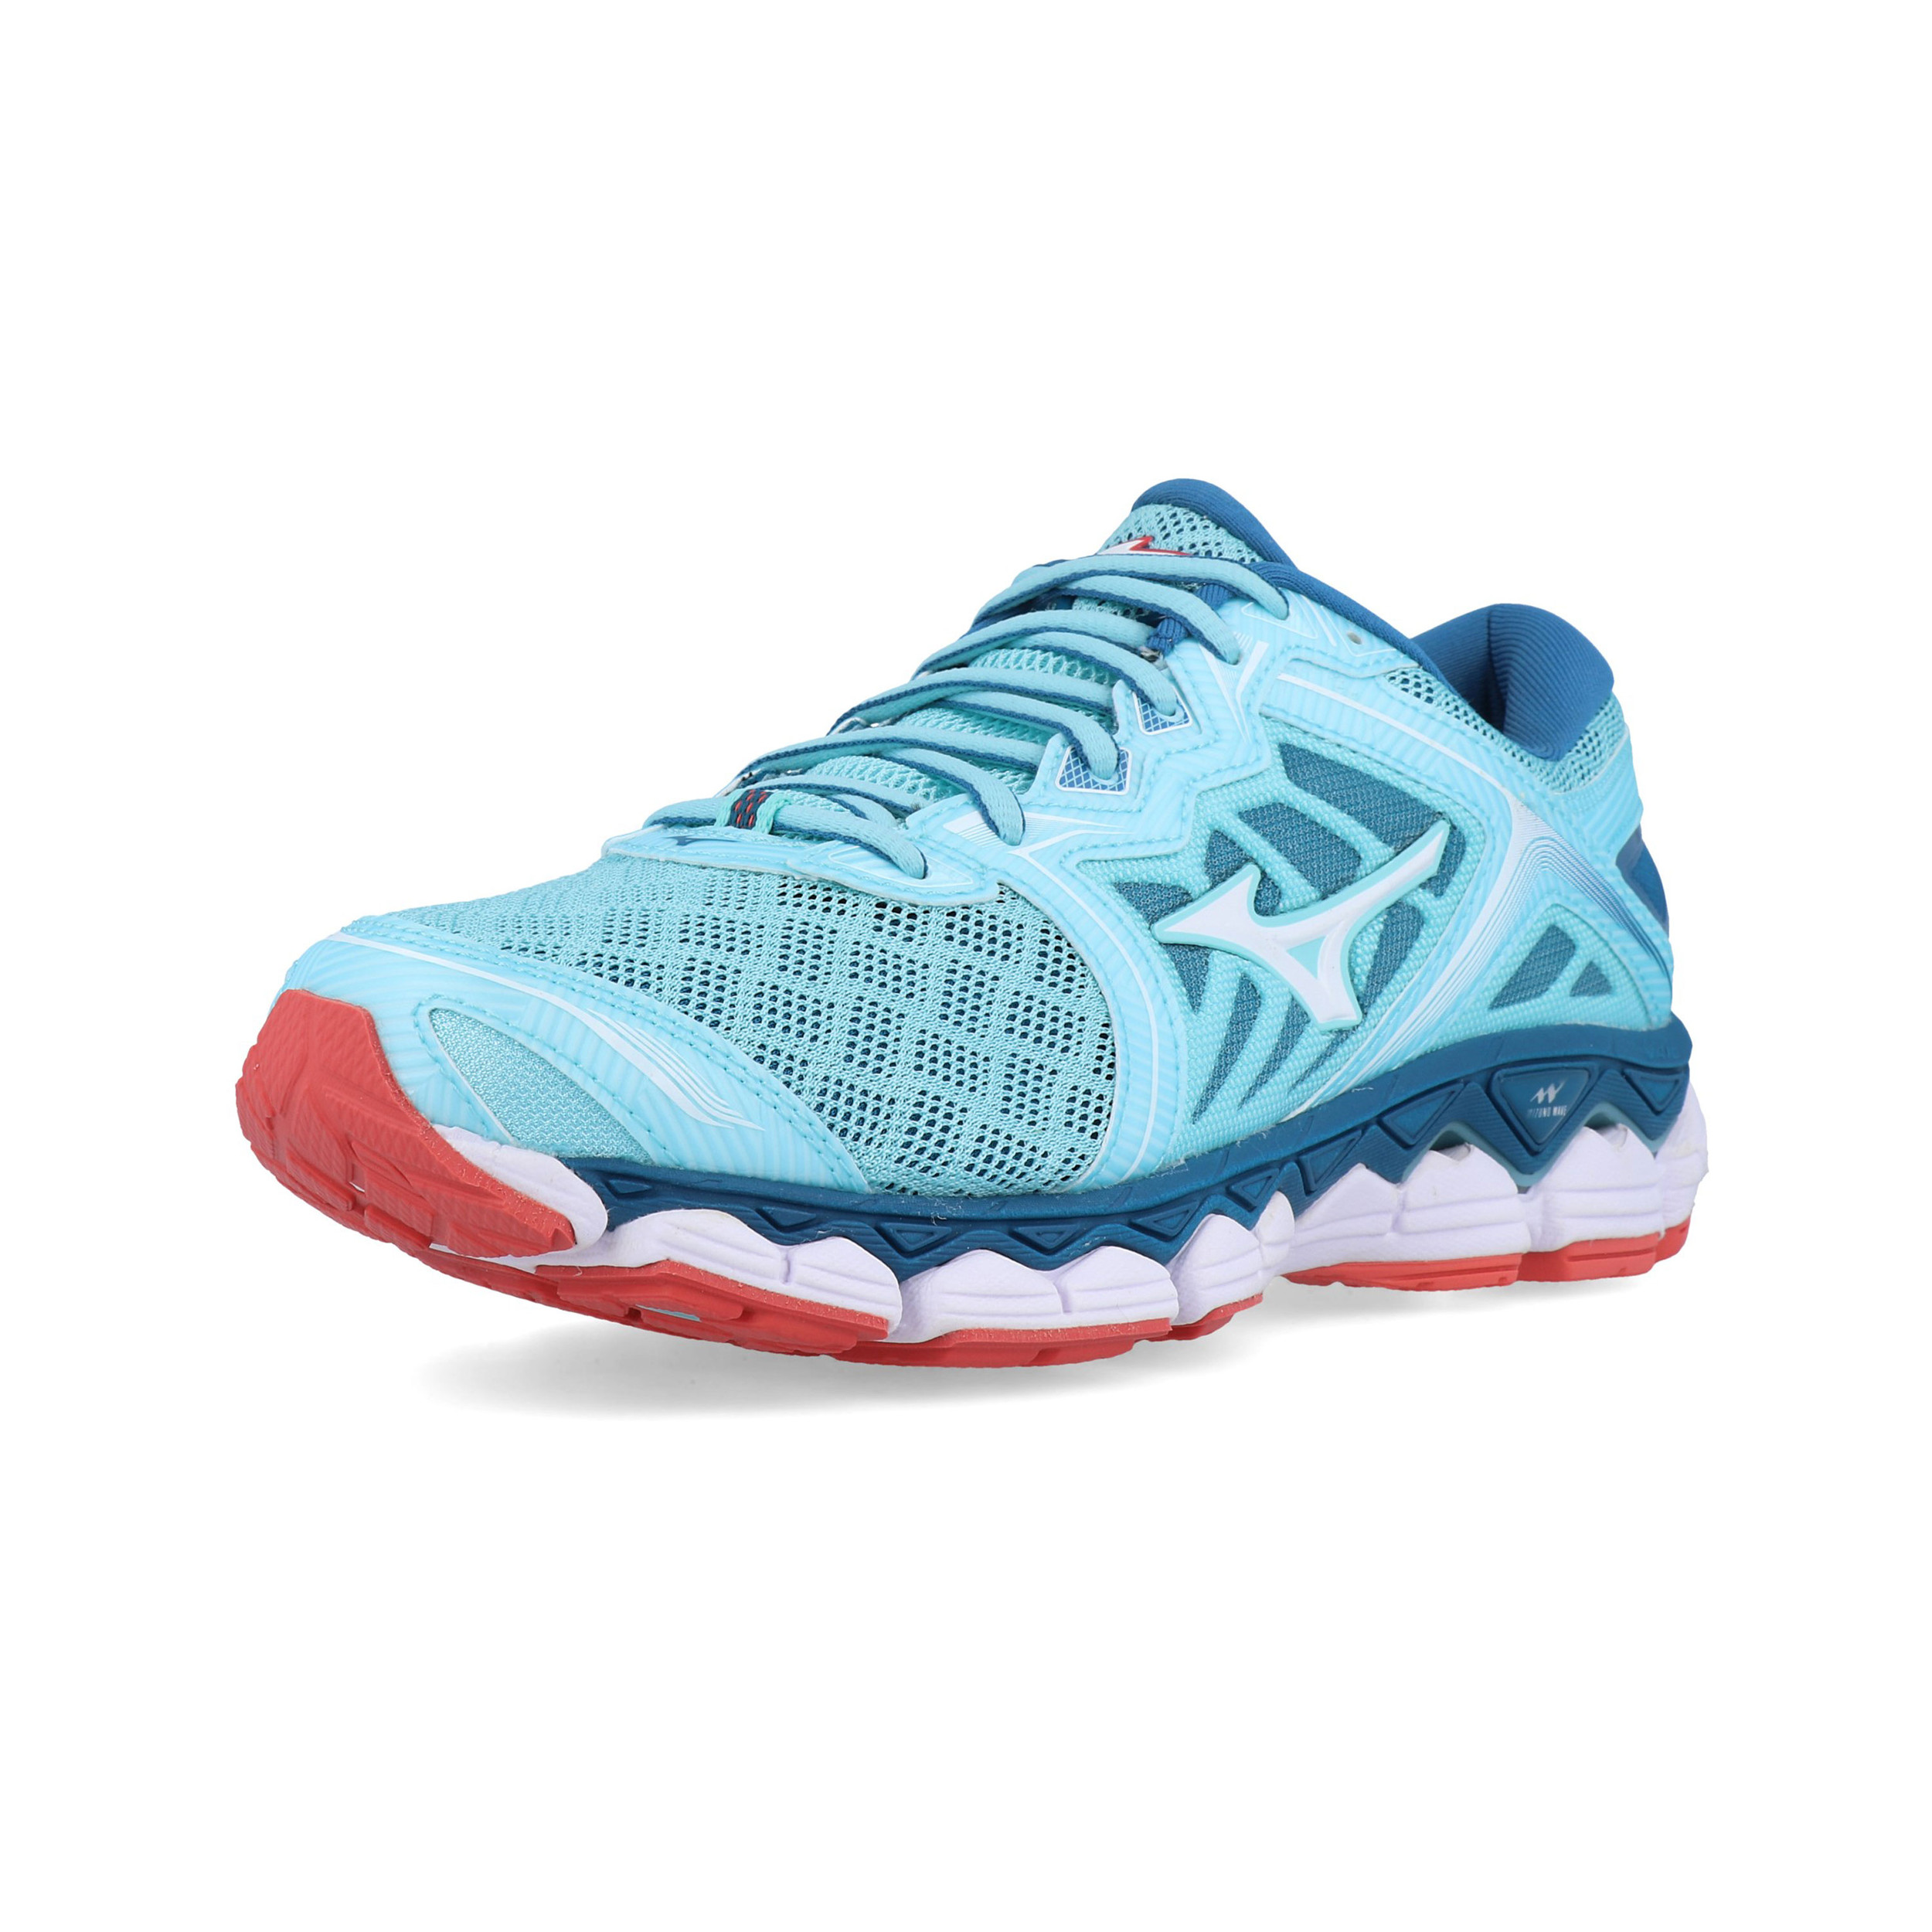 e11a0096782d Details about Mizuno Womens Wave Sky Running Shoe Blue Orange Sports  Breathable Lightweight